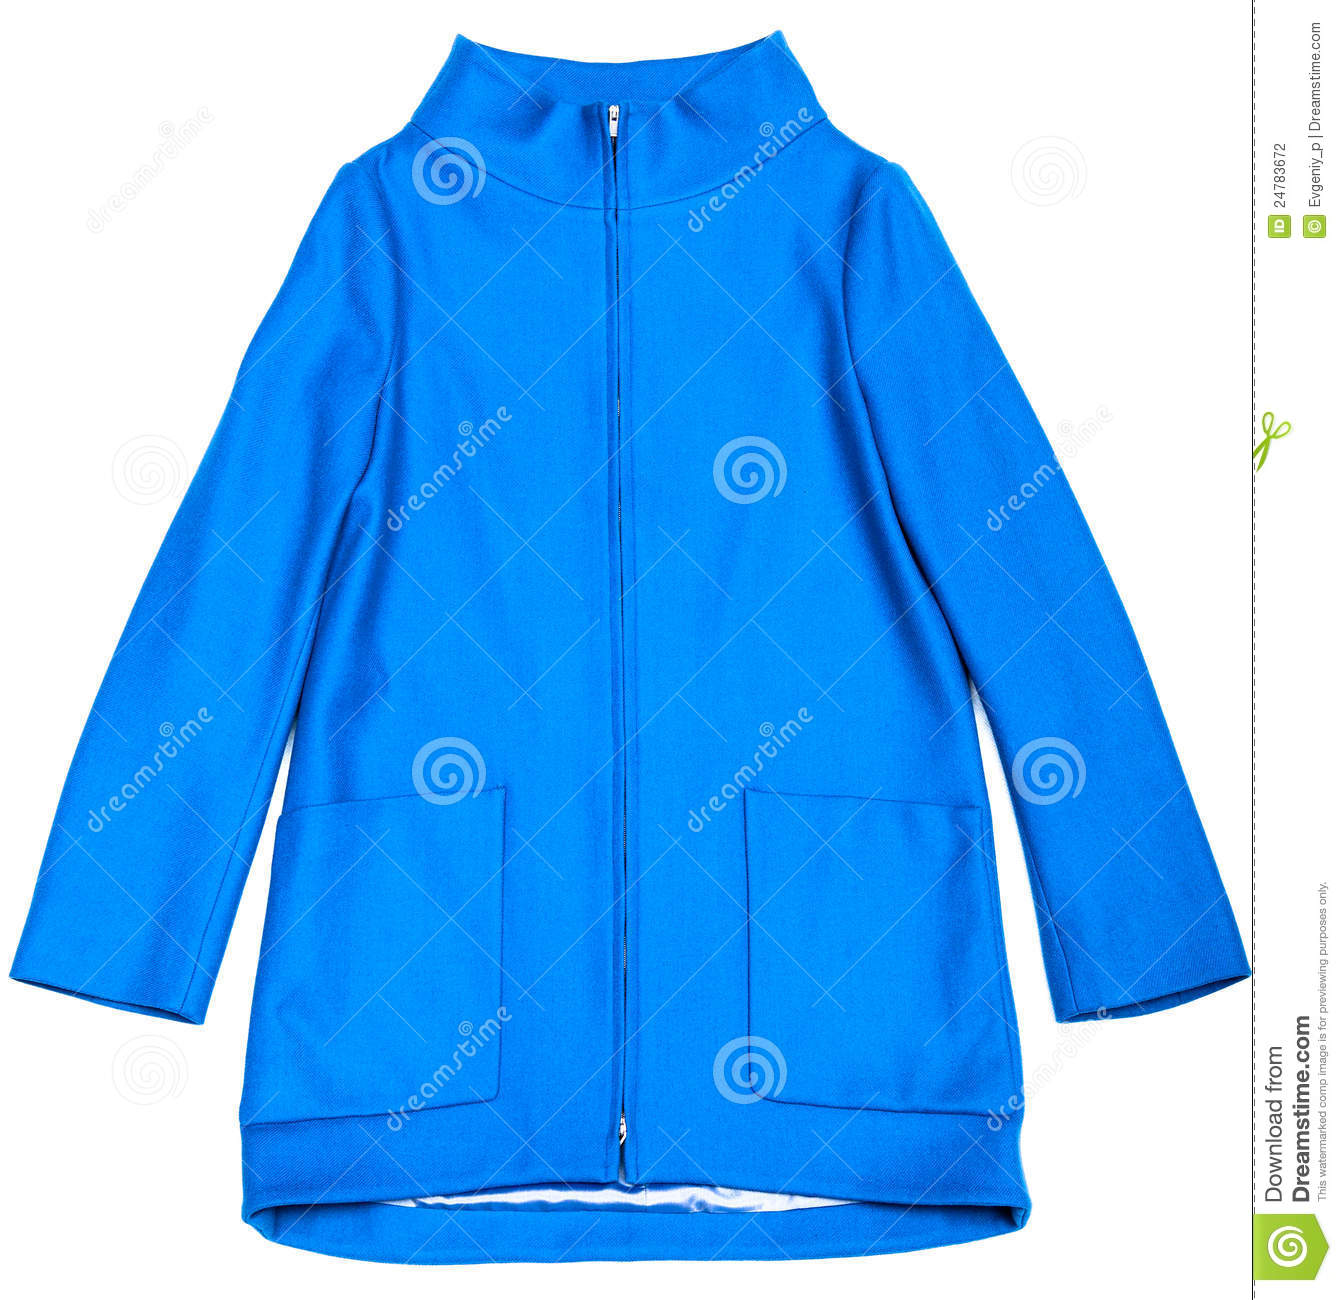 Blue Jacket With Pockets And A Zipper On A White Background